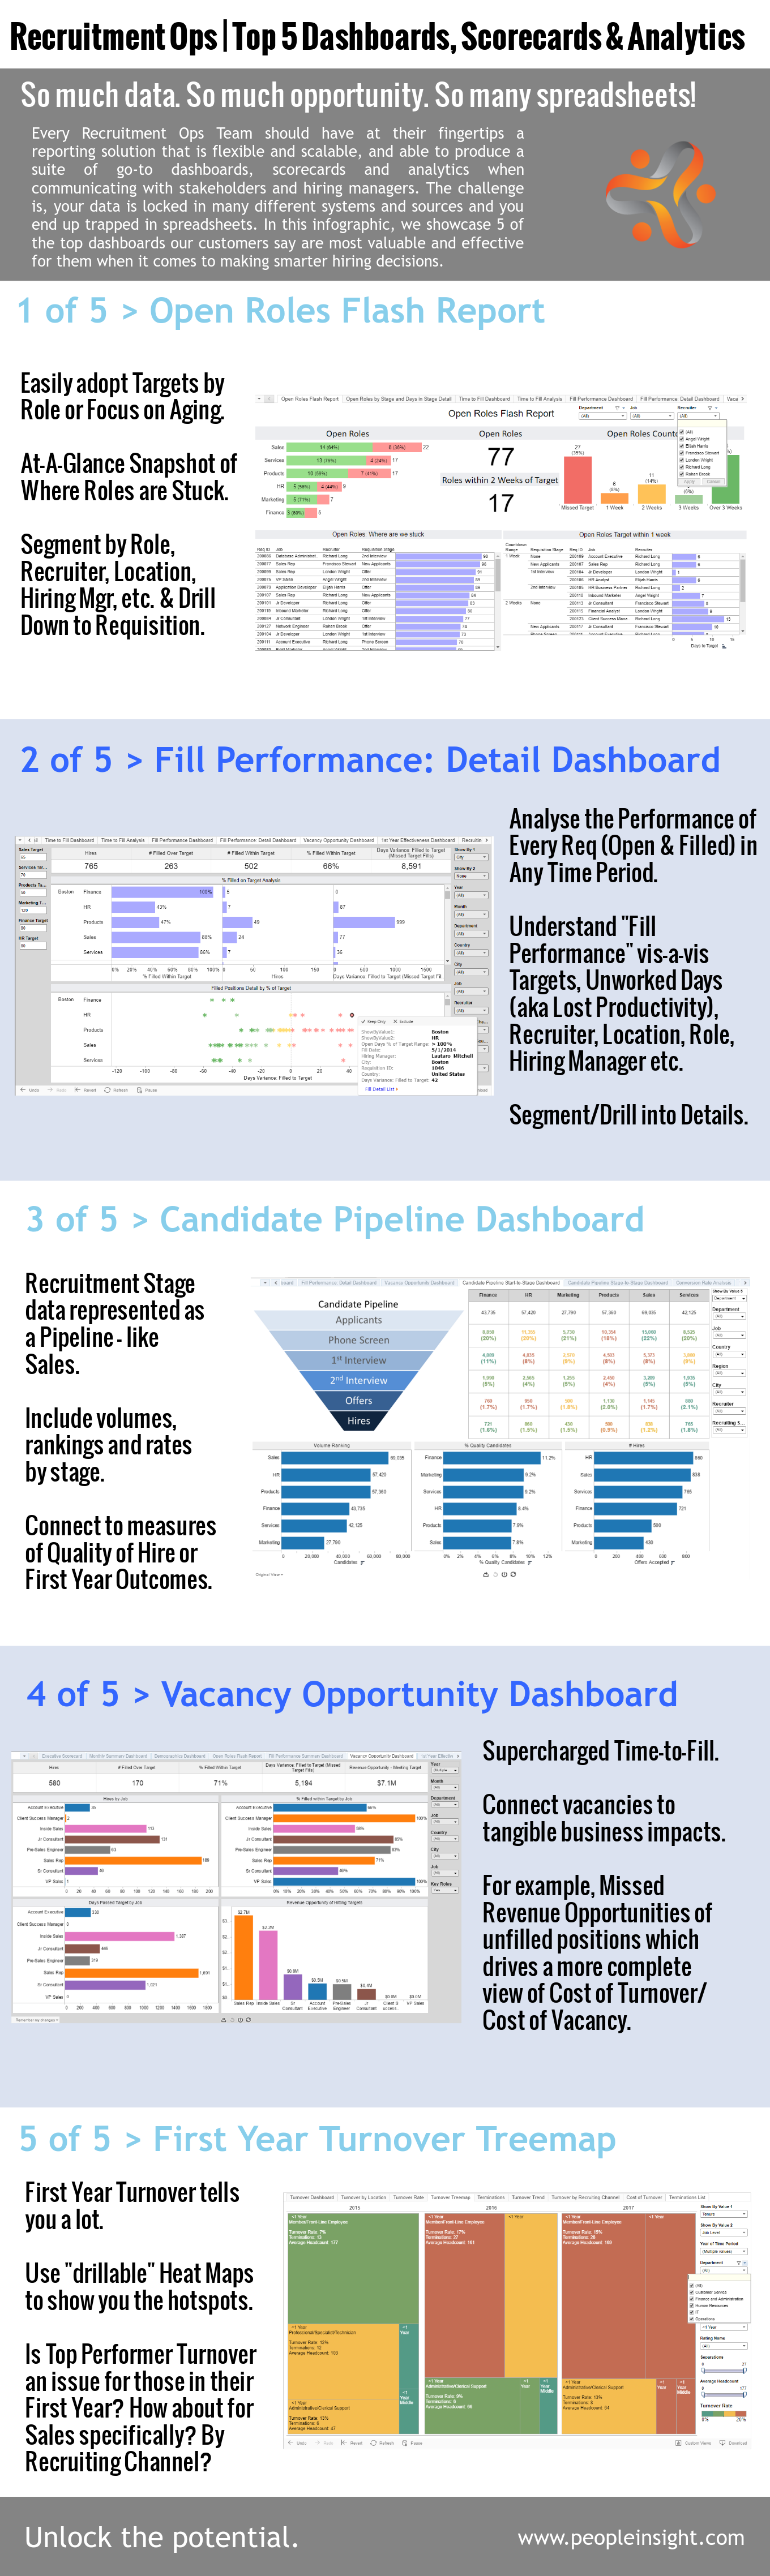 Top 5 TA Dashboards/ Scorecards